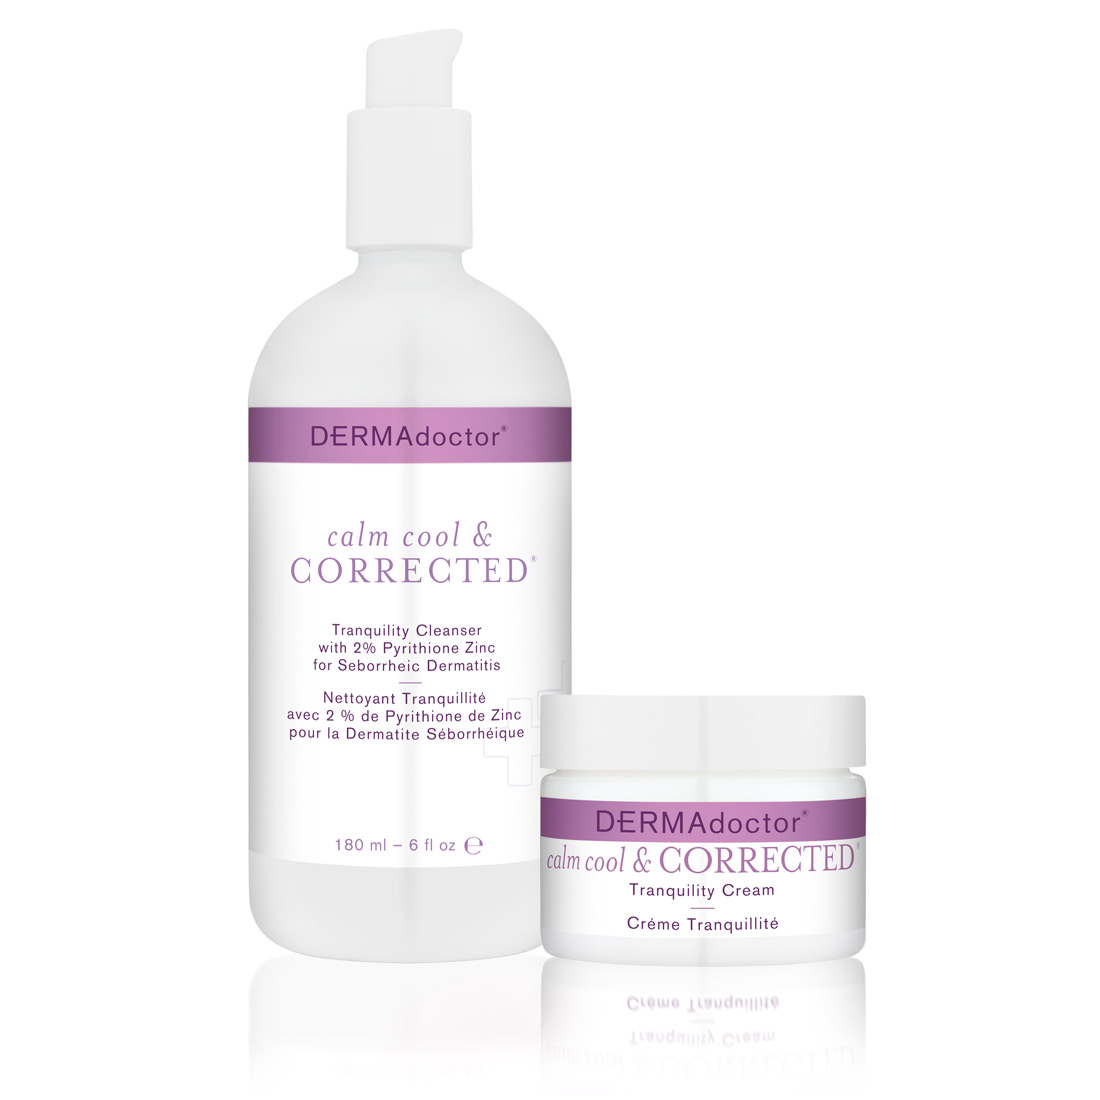 Calm Cool & Corrected Cleanser & Cream Duo